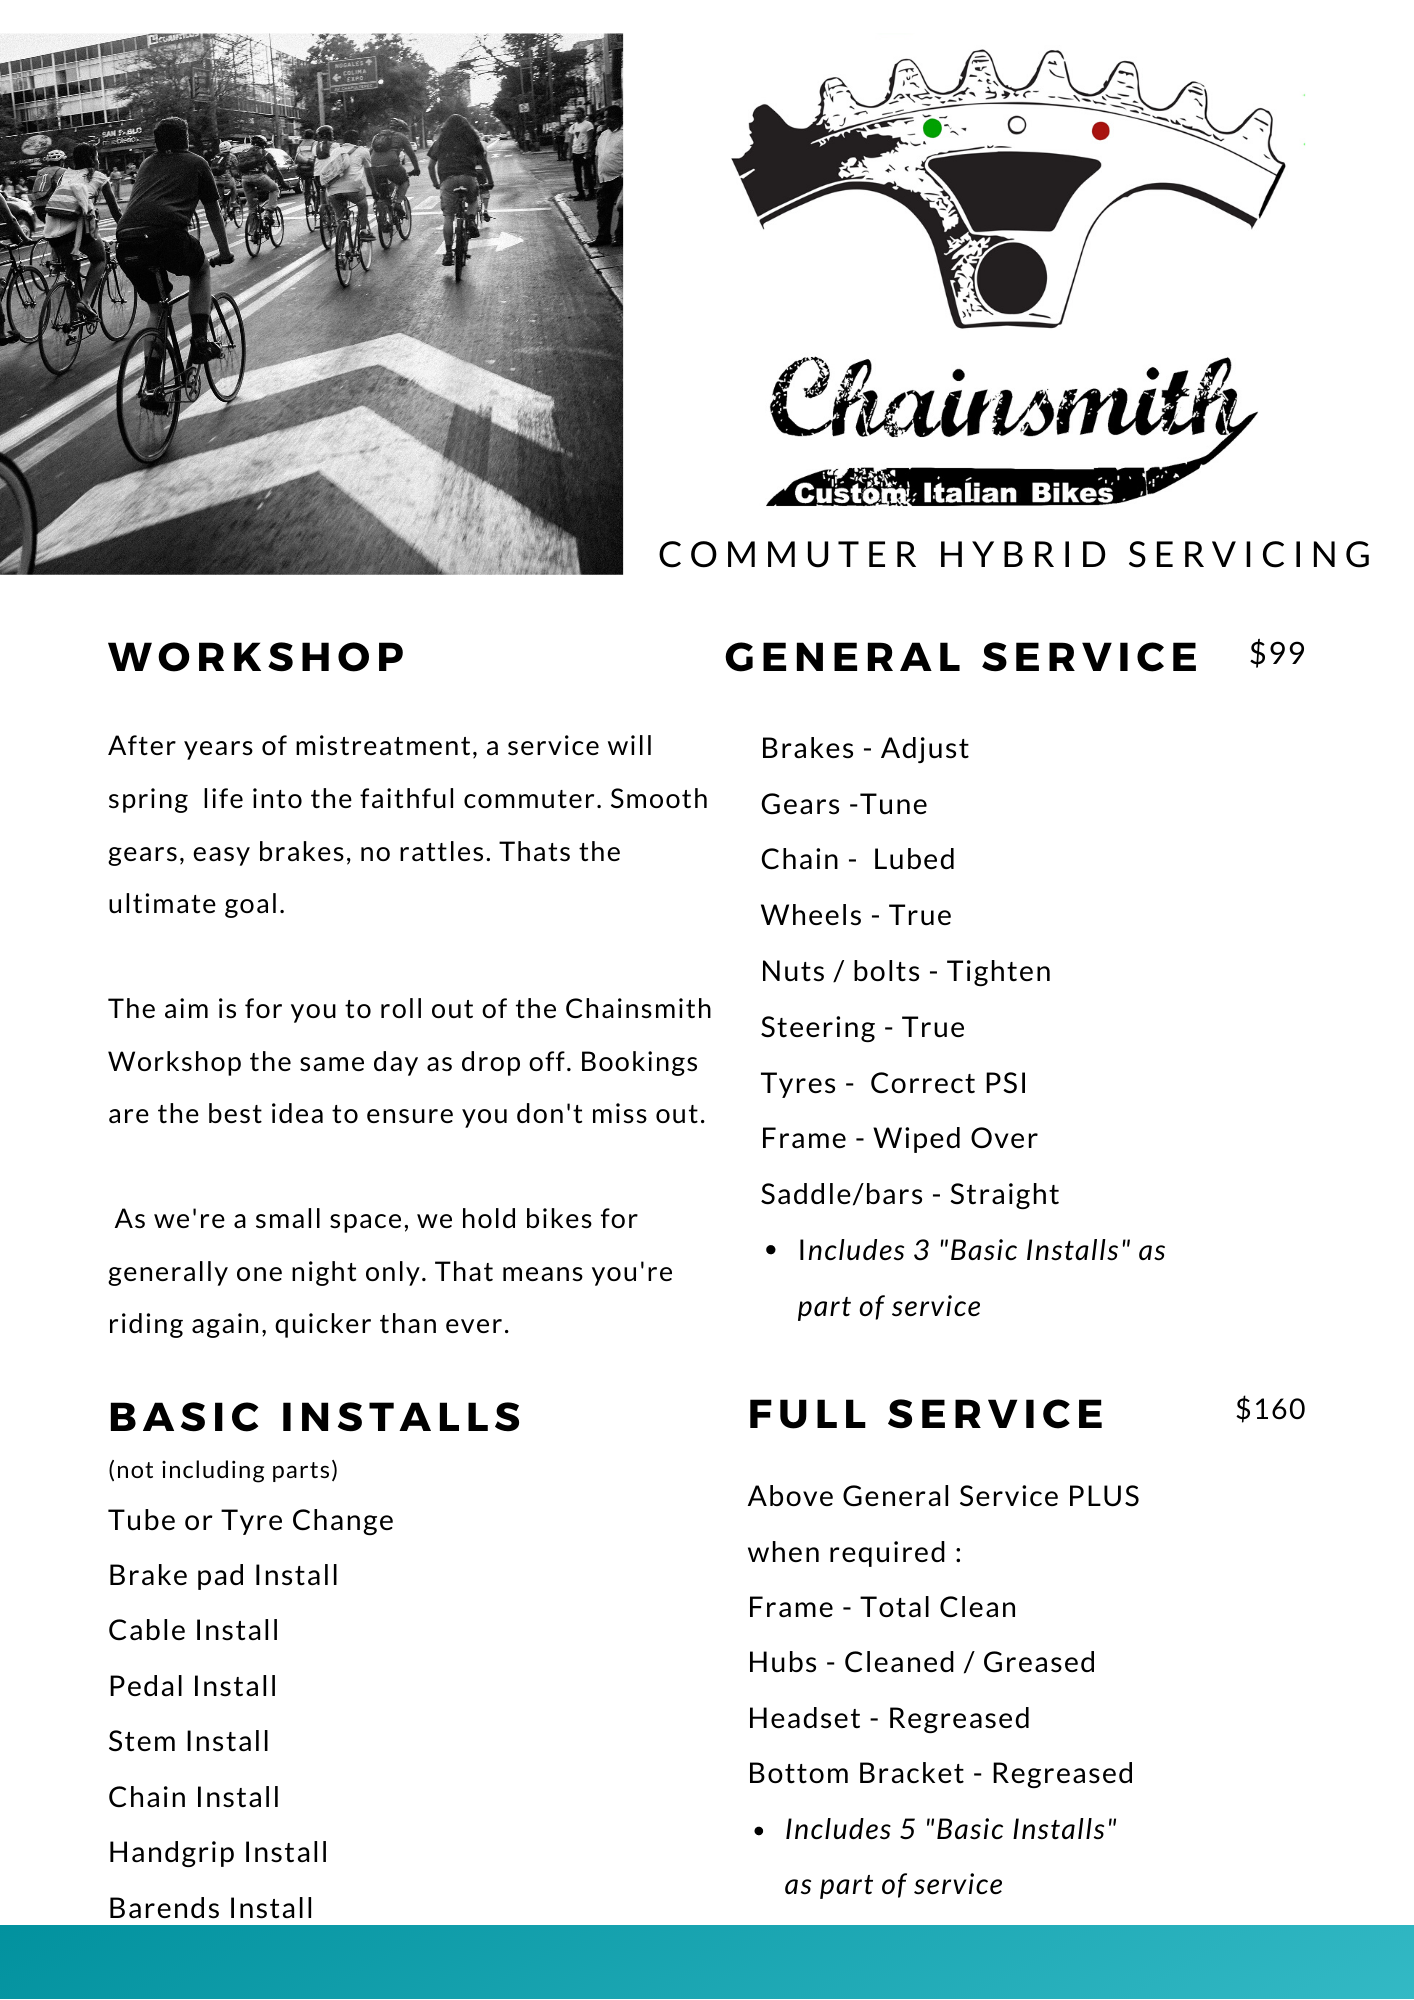 CHAINSMITH SYDNEY BEST BIKE SERVICING